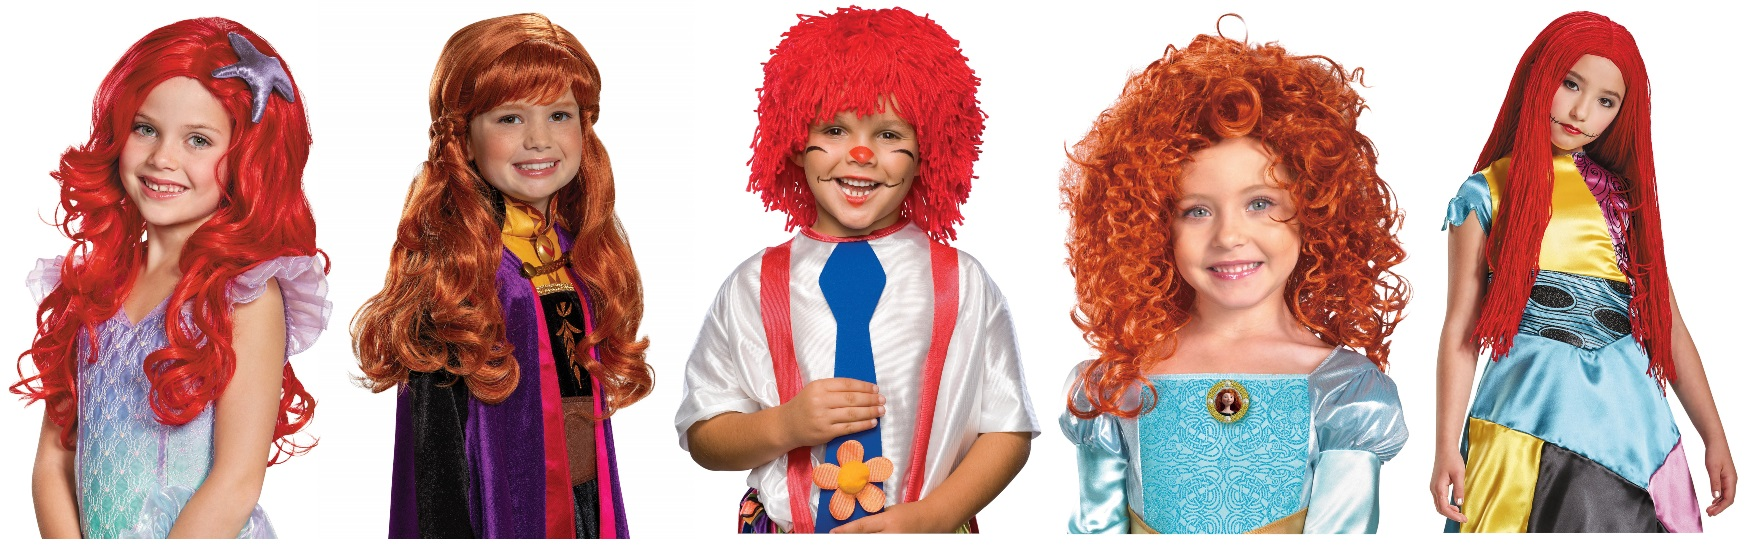 Kids' Red Wig Characters